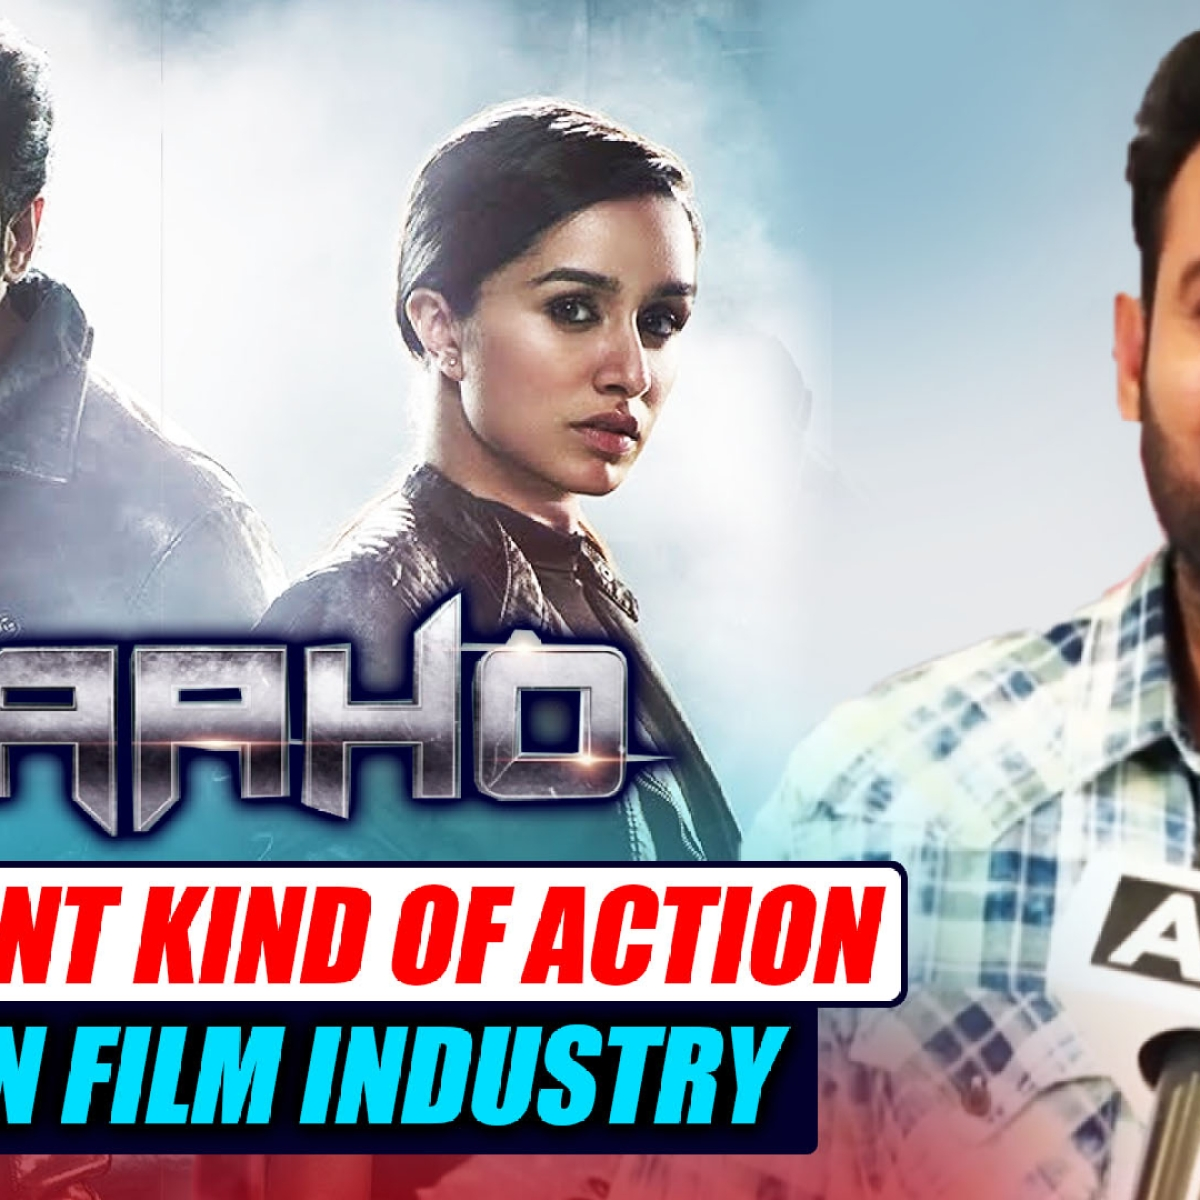 SAAHO Star Prabhas: We Tried To Give Different Kind Of Action Film For Indian Film Industry